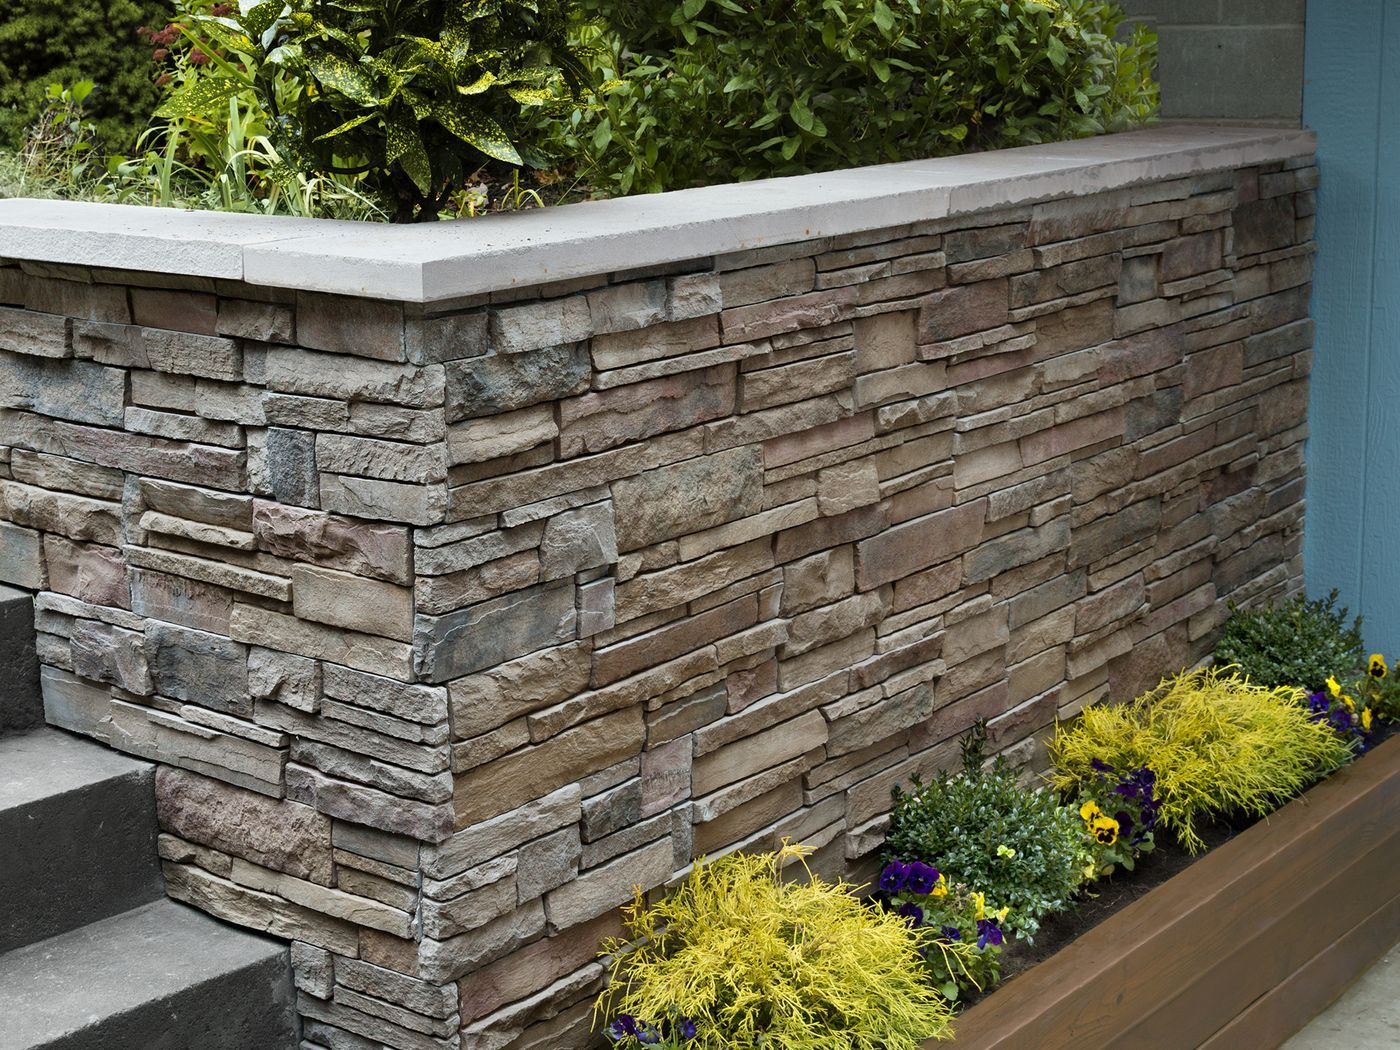 How To Clad A Wall In Stone In 2020 Stone Facade Exterior Wall Panels Exterior Stone